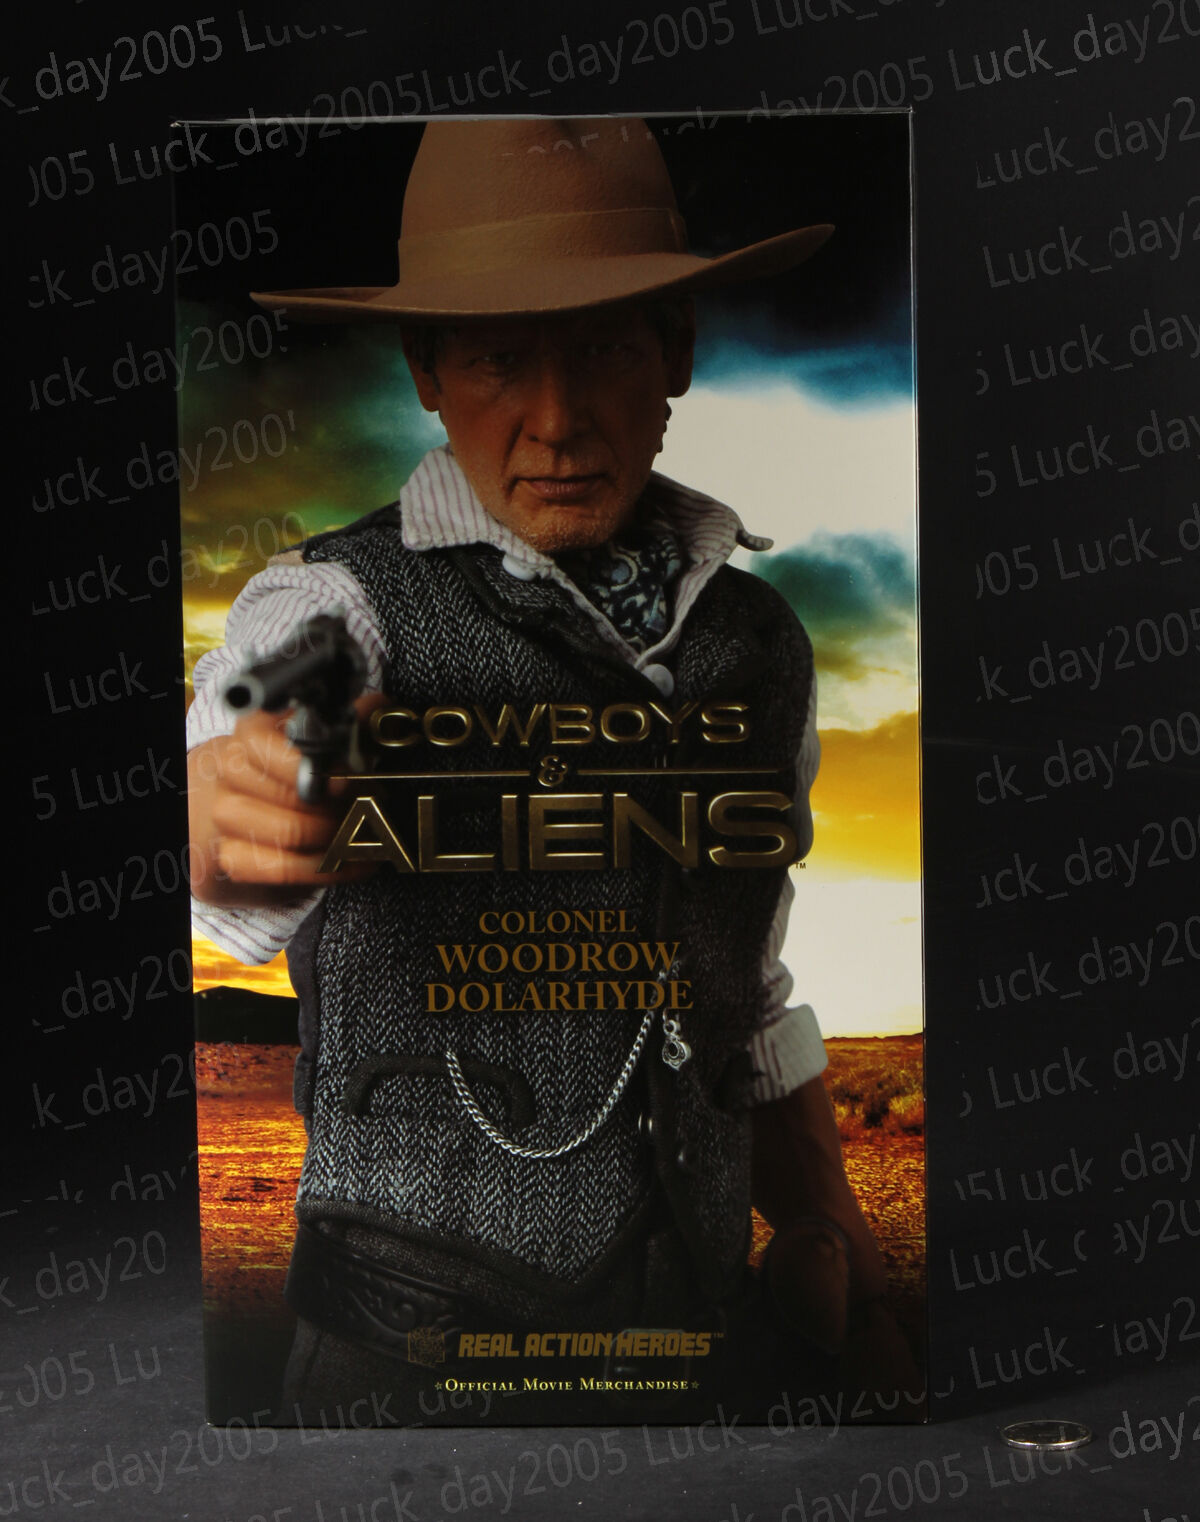 Medicom RAH Cowboys & Aliens Colonel Woodrow Dolarhyde Harrison Ford 1 6 Figure